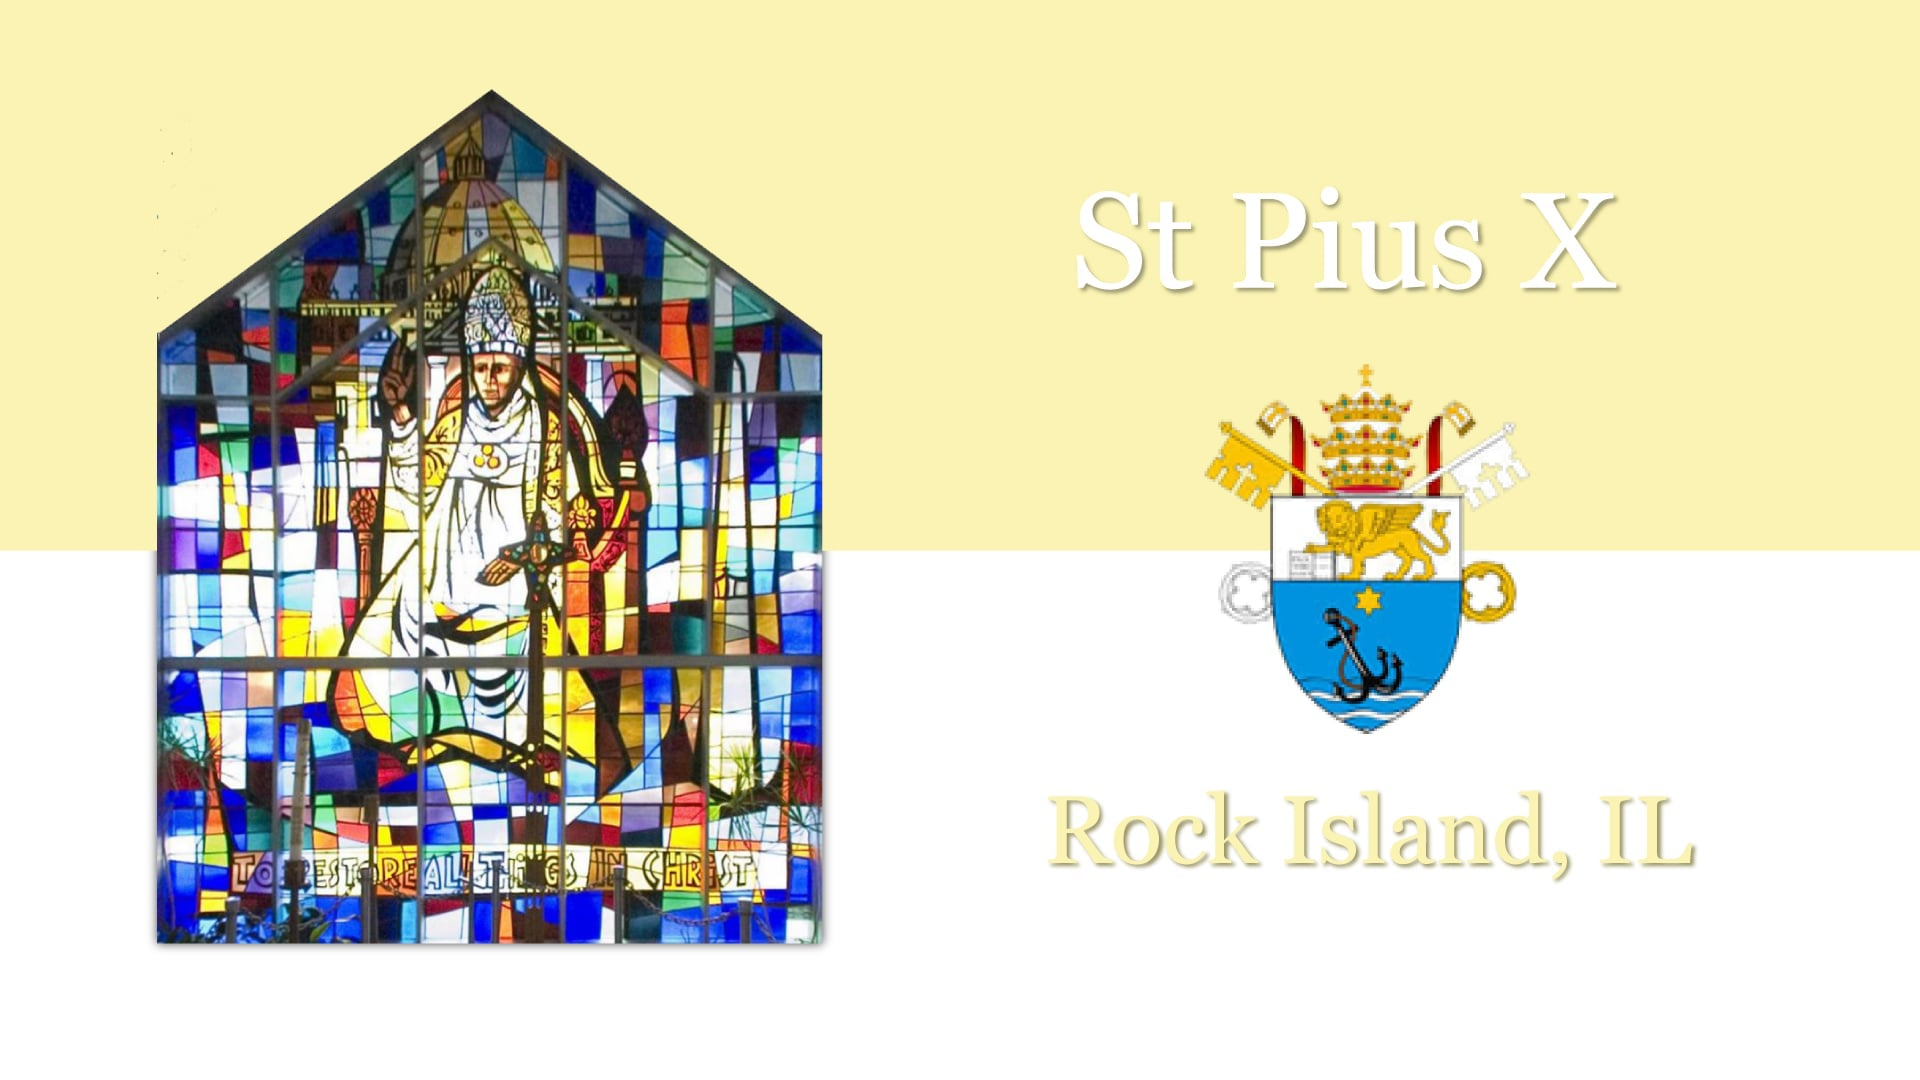 Third Sunday of Easter, April 18th, St Pius X, Rock Island